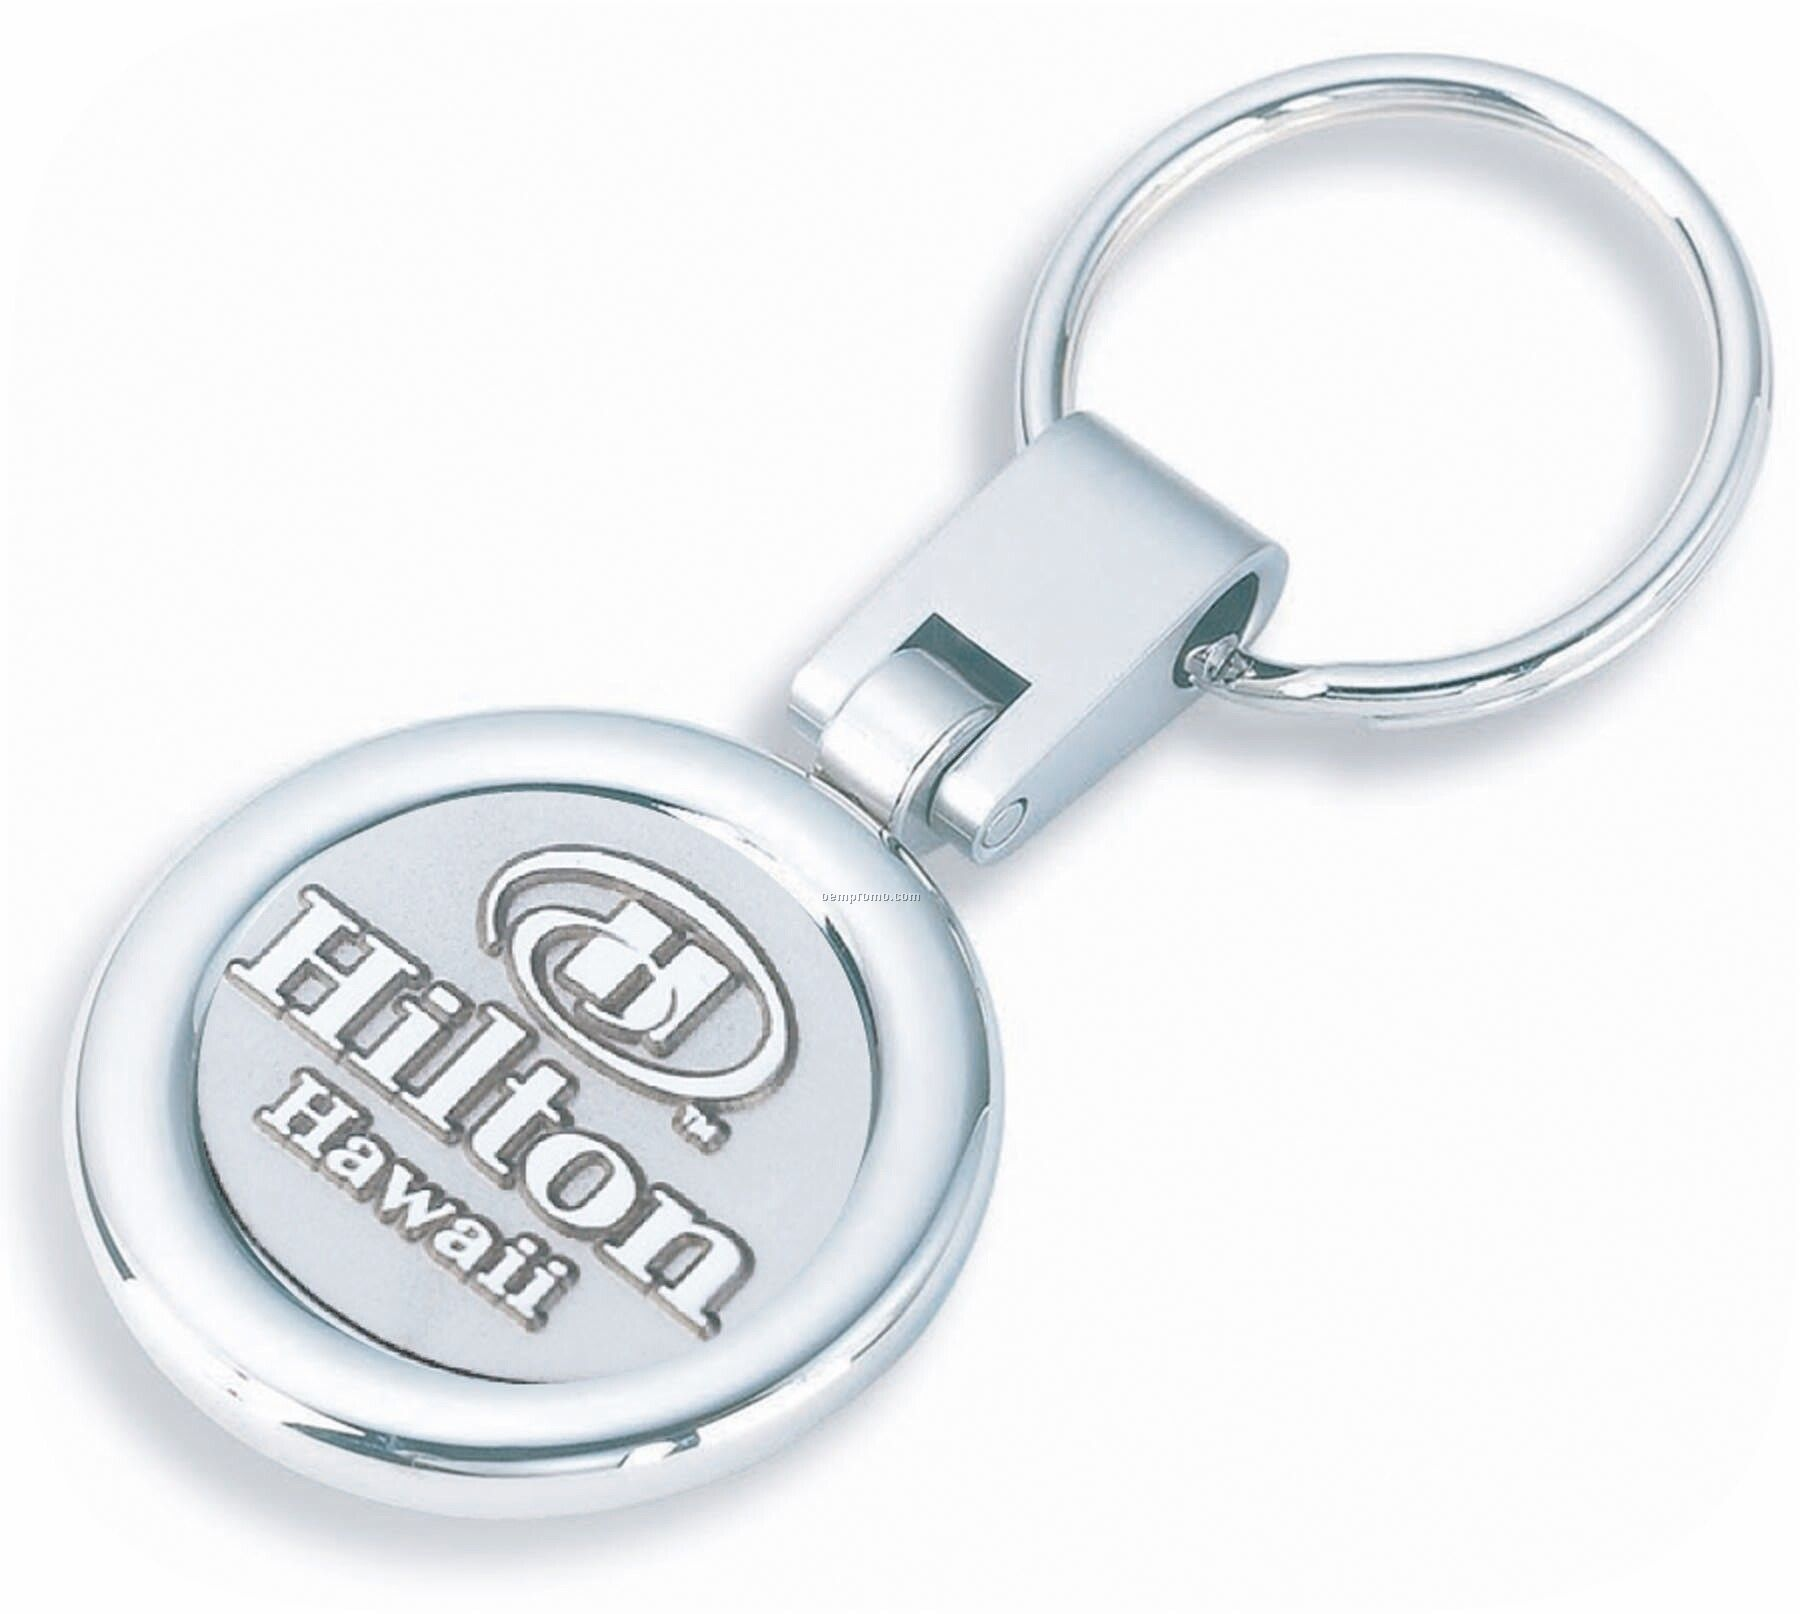 Shiny Nickel Swivel Rotating Key Ring With Raised And Recessed 3d Emblem